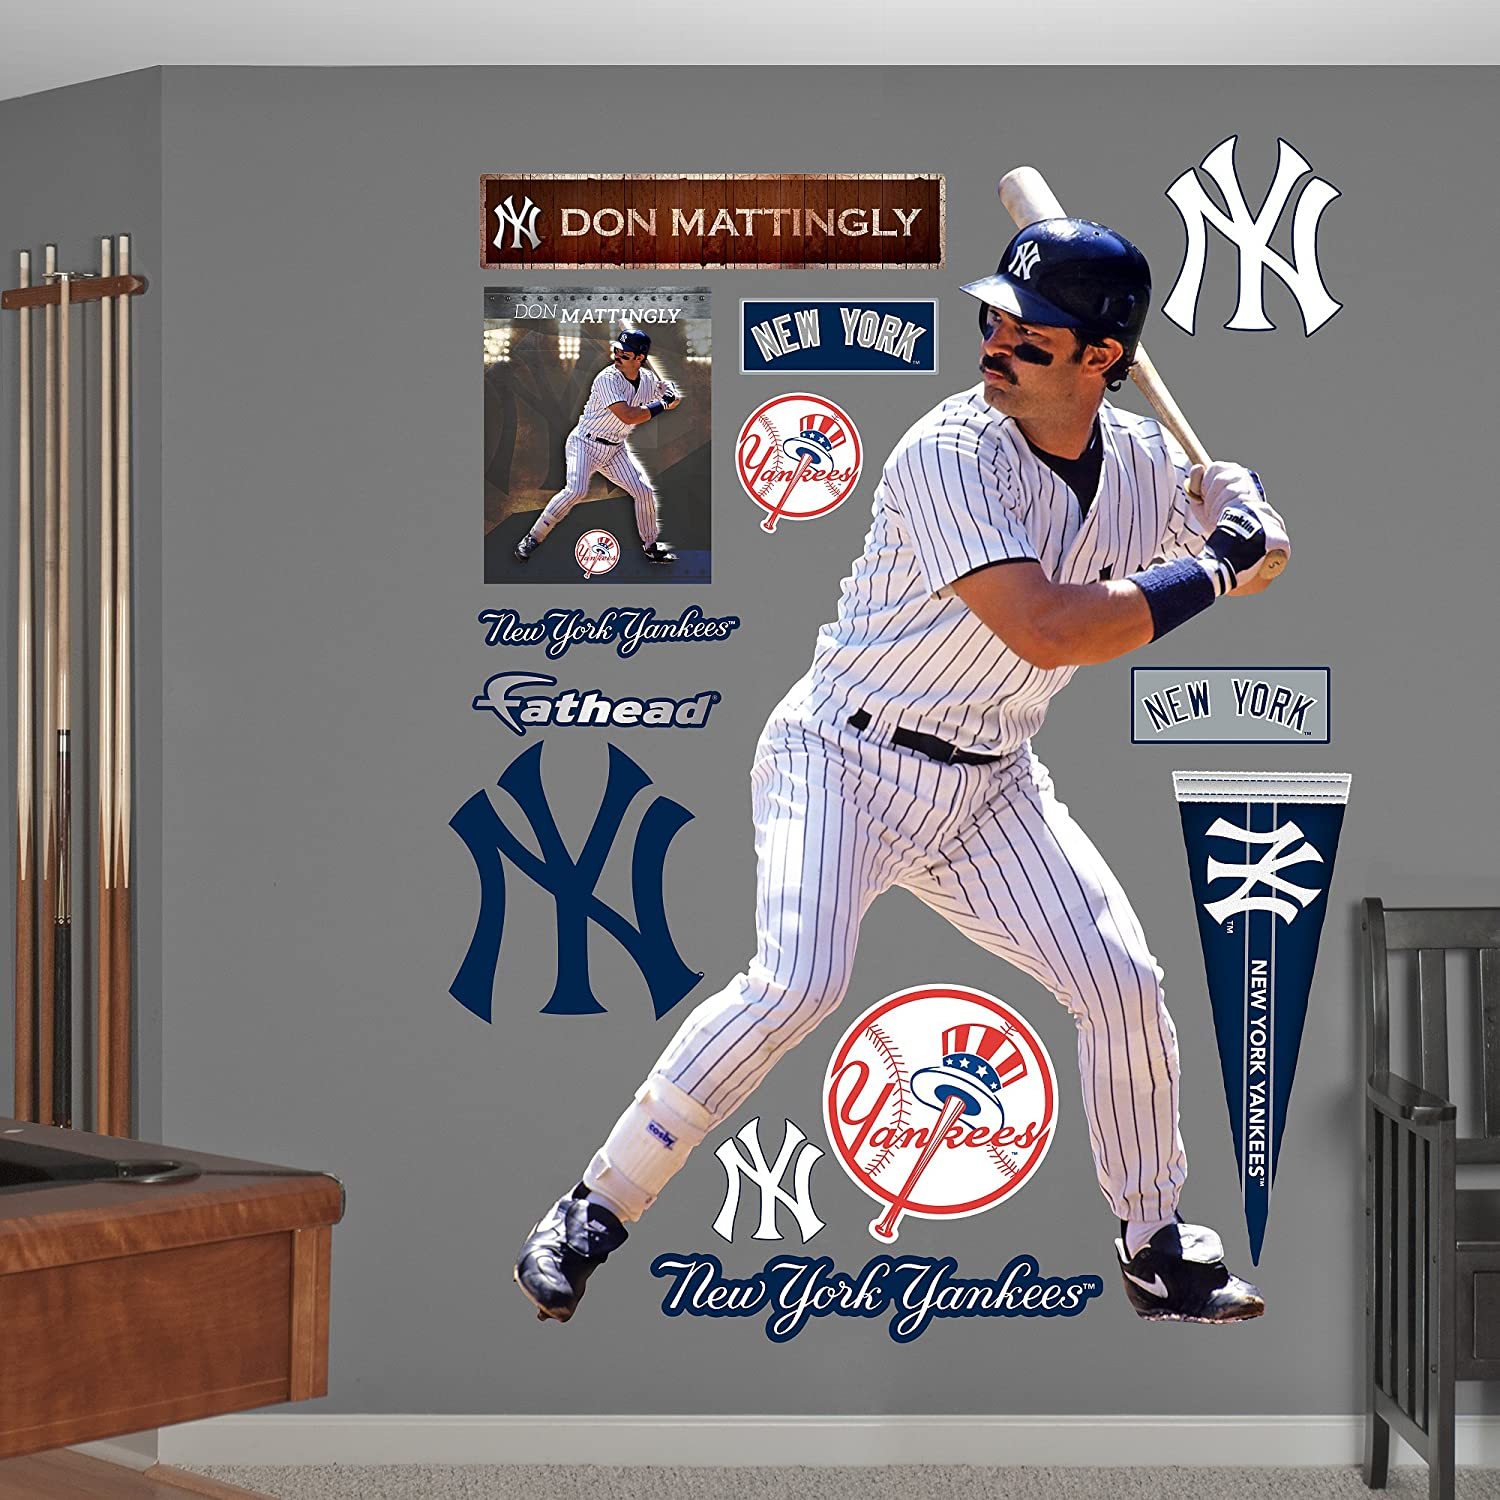 Amazon.com : MLB New York Yankees Don Mattingly Fathead Wall Decal, Real  Big : Sports U0026 Outdoors